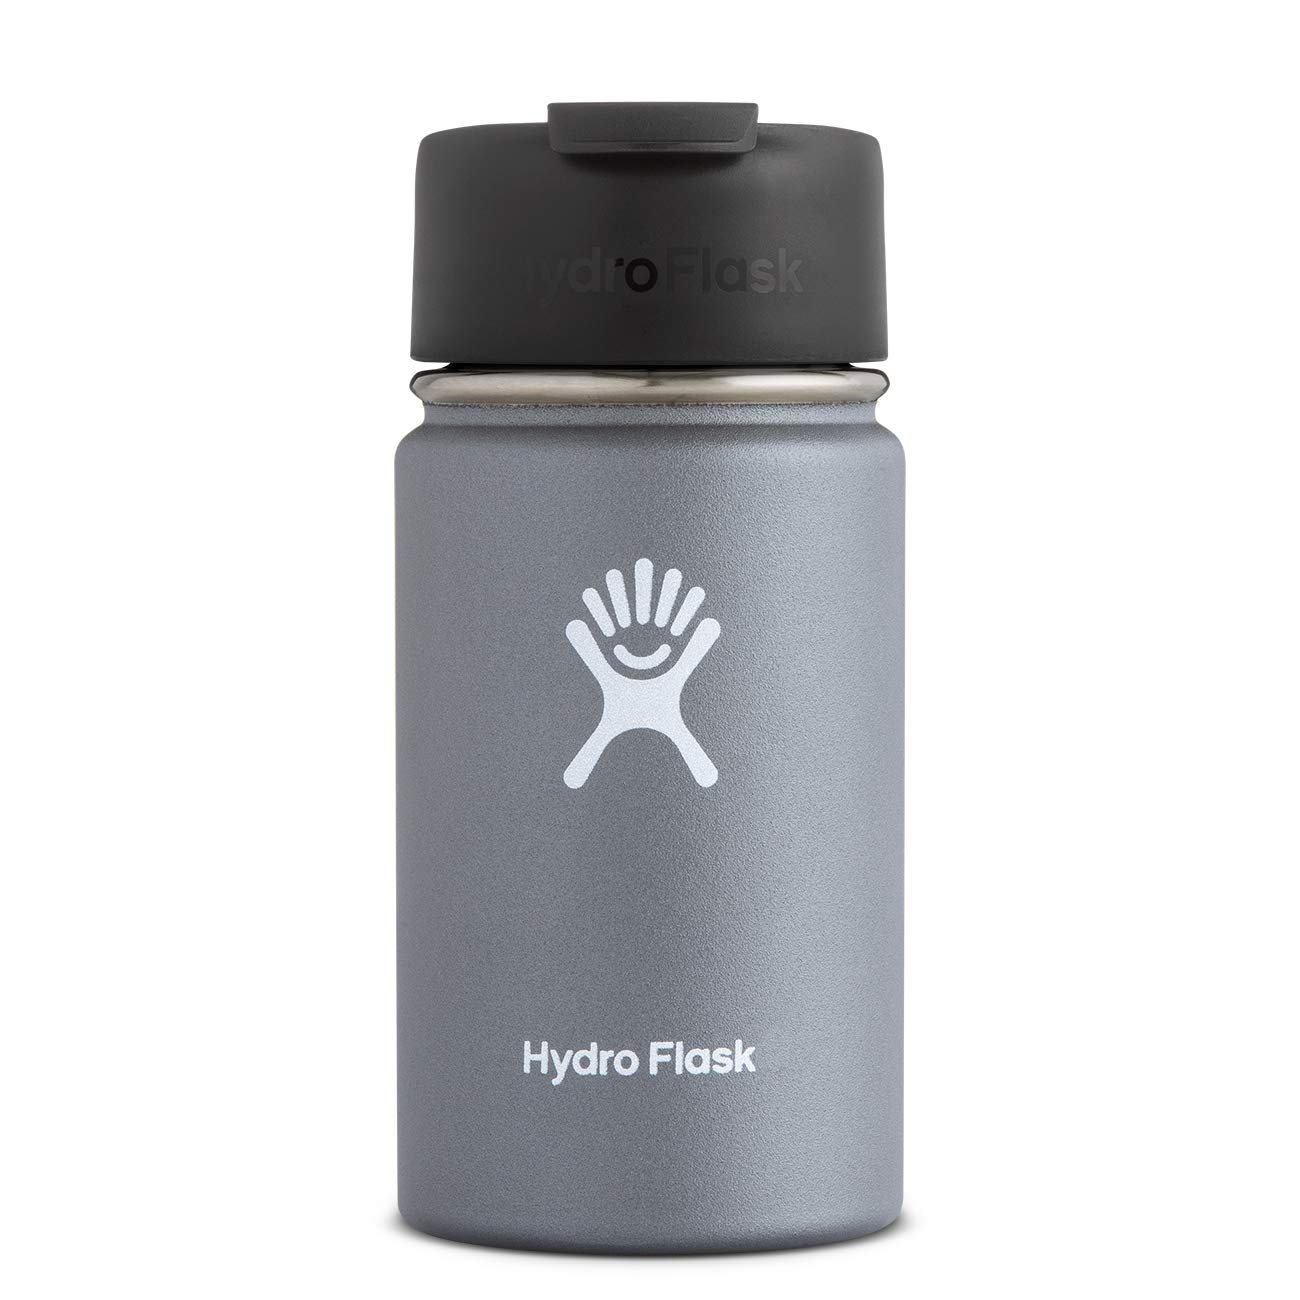 Hydro Flask Travel Coffee Flask - 12 oz, Graphite by Hydro Flask